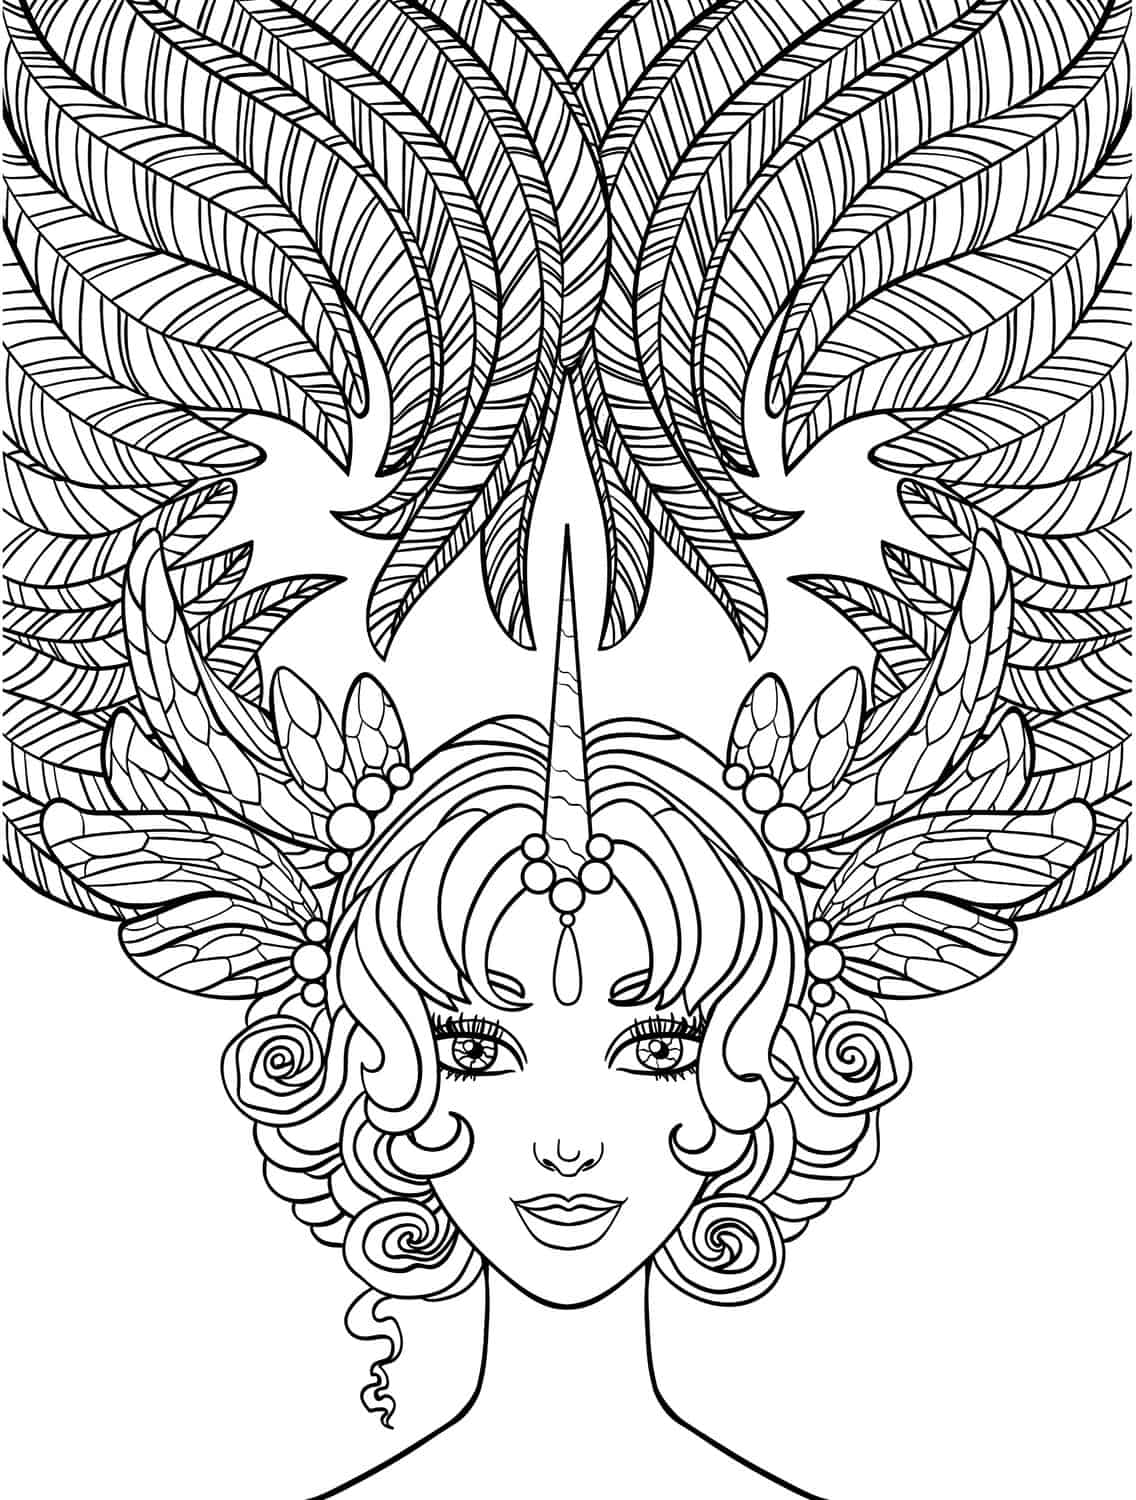 10 crazy hair adult coloring pages page 11 of 12 nerdy